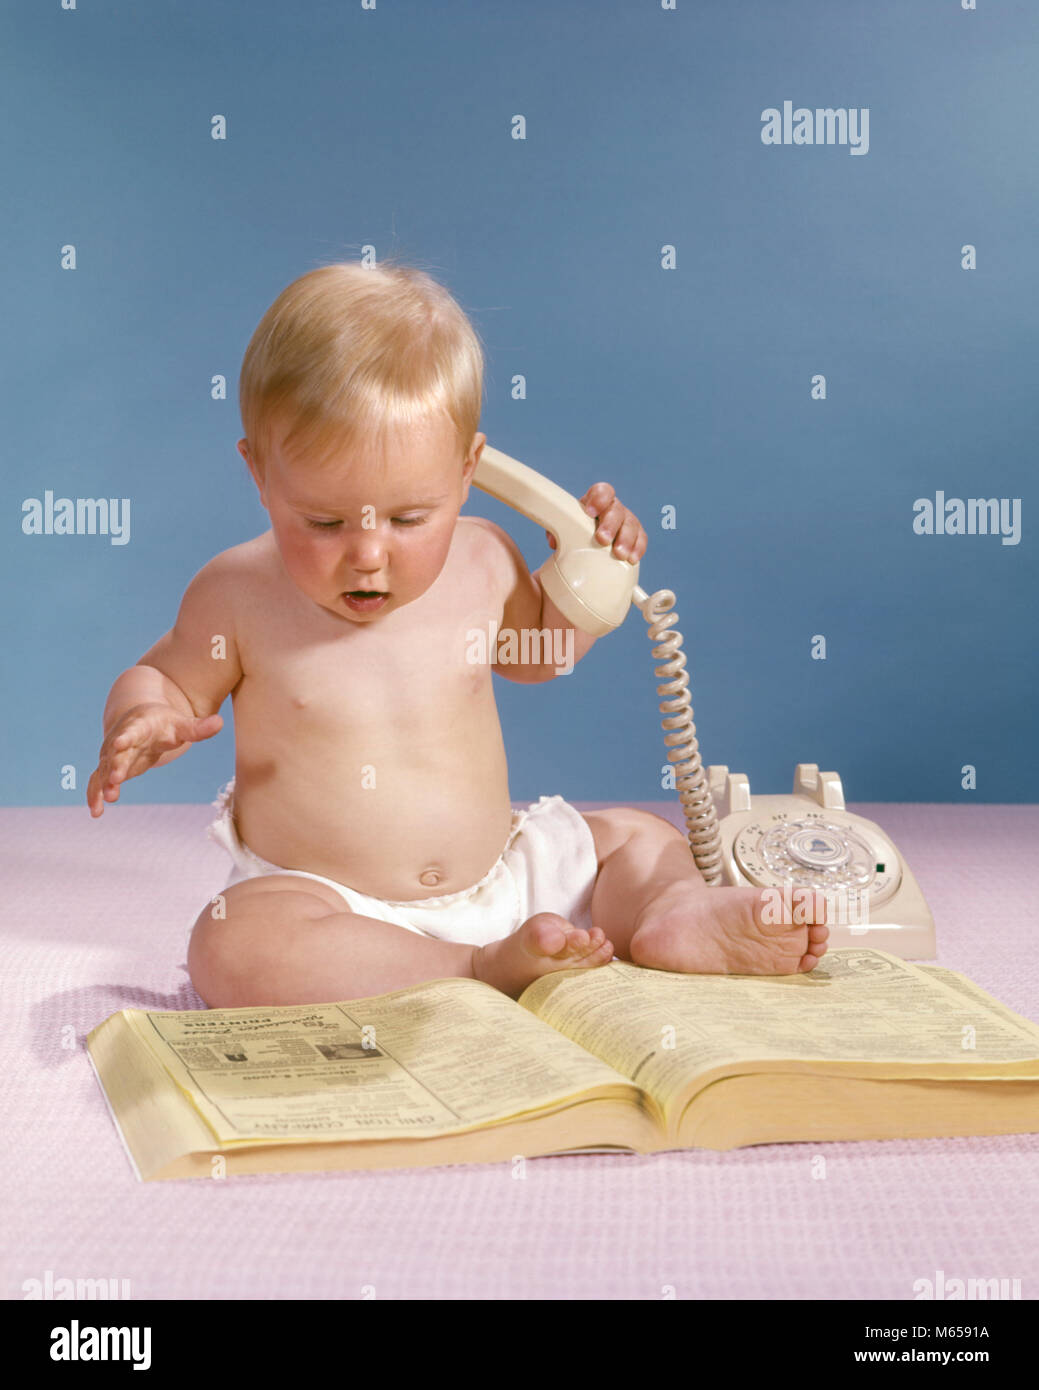 1960s BLOND BABY HOLDING TELEPHONE LOOKING AT PHONEBOOK YELLOW PAGES - kb5299 HAR001 HARS INDOORS NOSTALGIA CUSTOMER - Stock Image